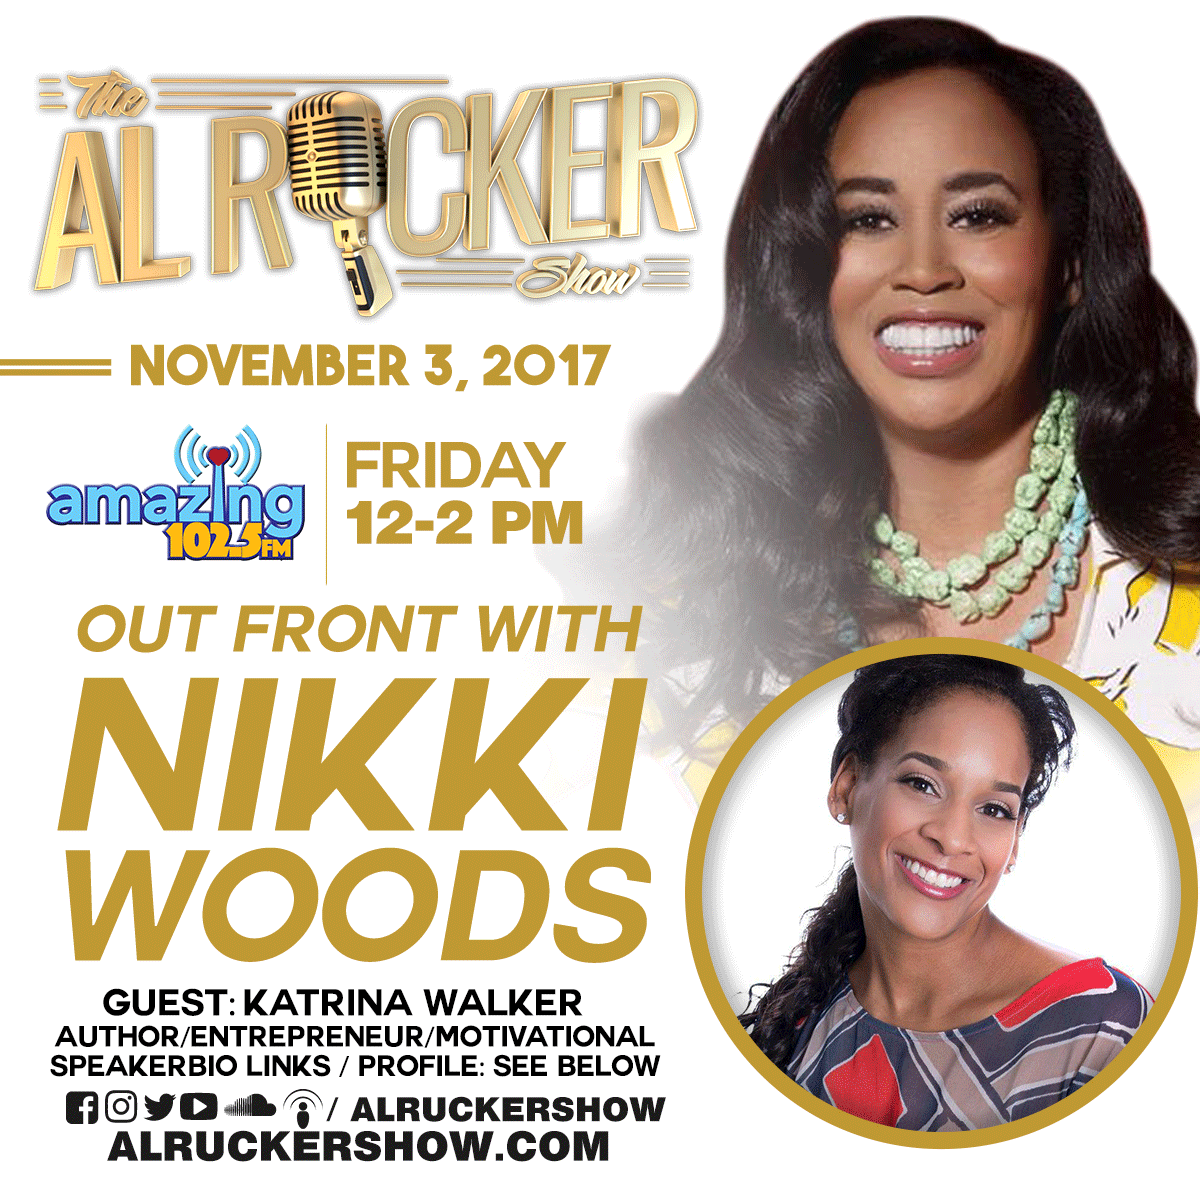 Katrina Walker Interviewed By Nikki Woods: November 3, 2017